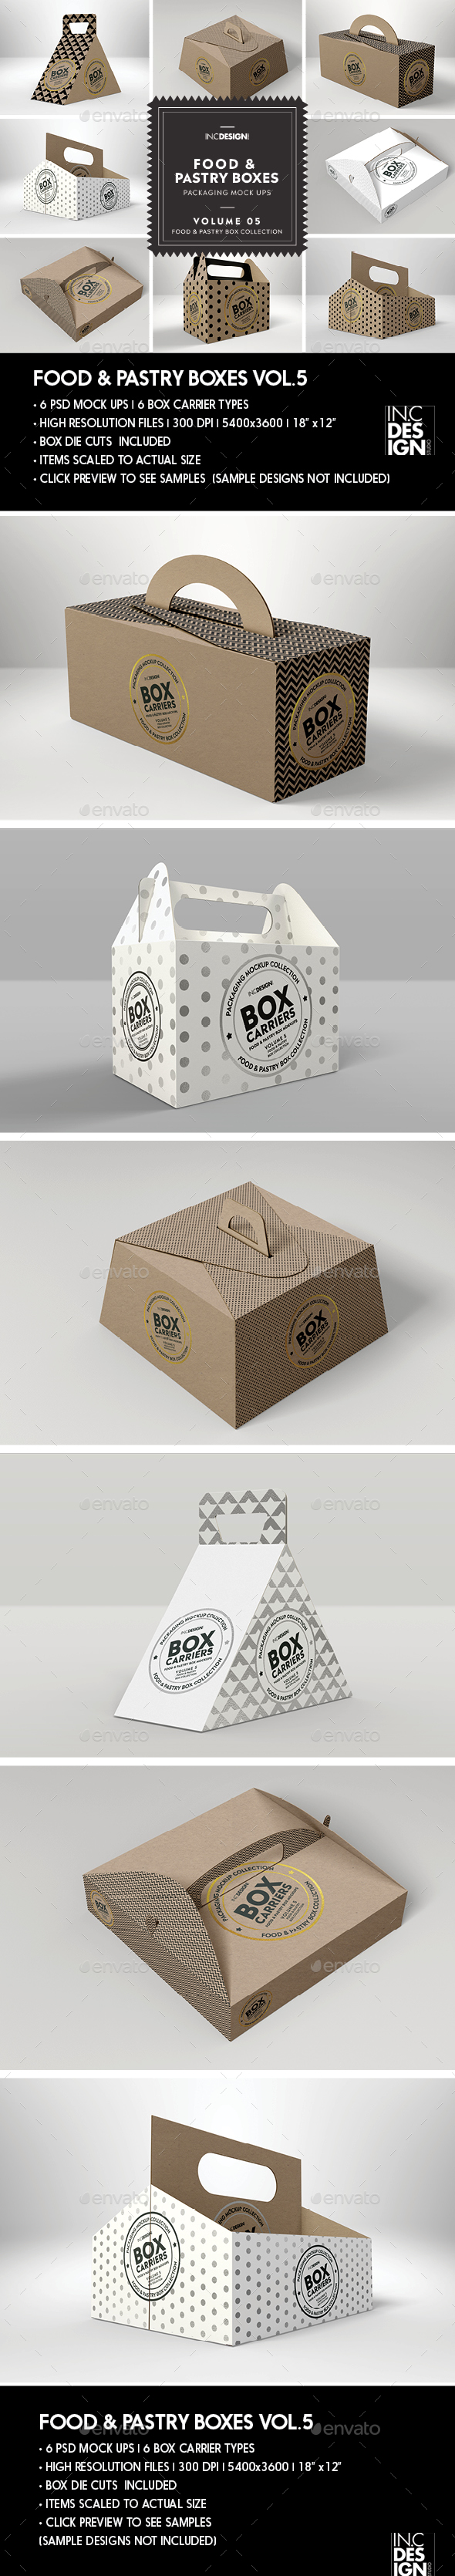 Food Pastry Boxes Vol.5: Kraft Carrier Boxes | Take Out Packaging Mock Ups - Food and Drink Packaging